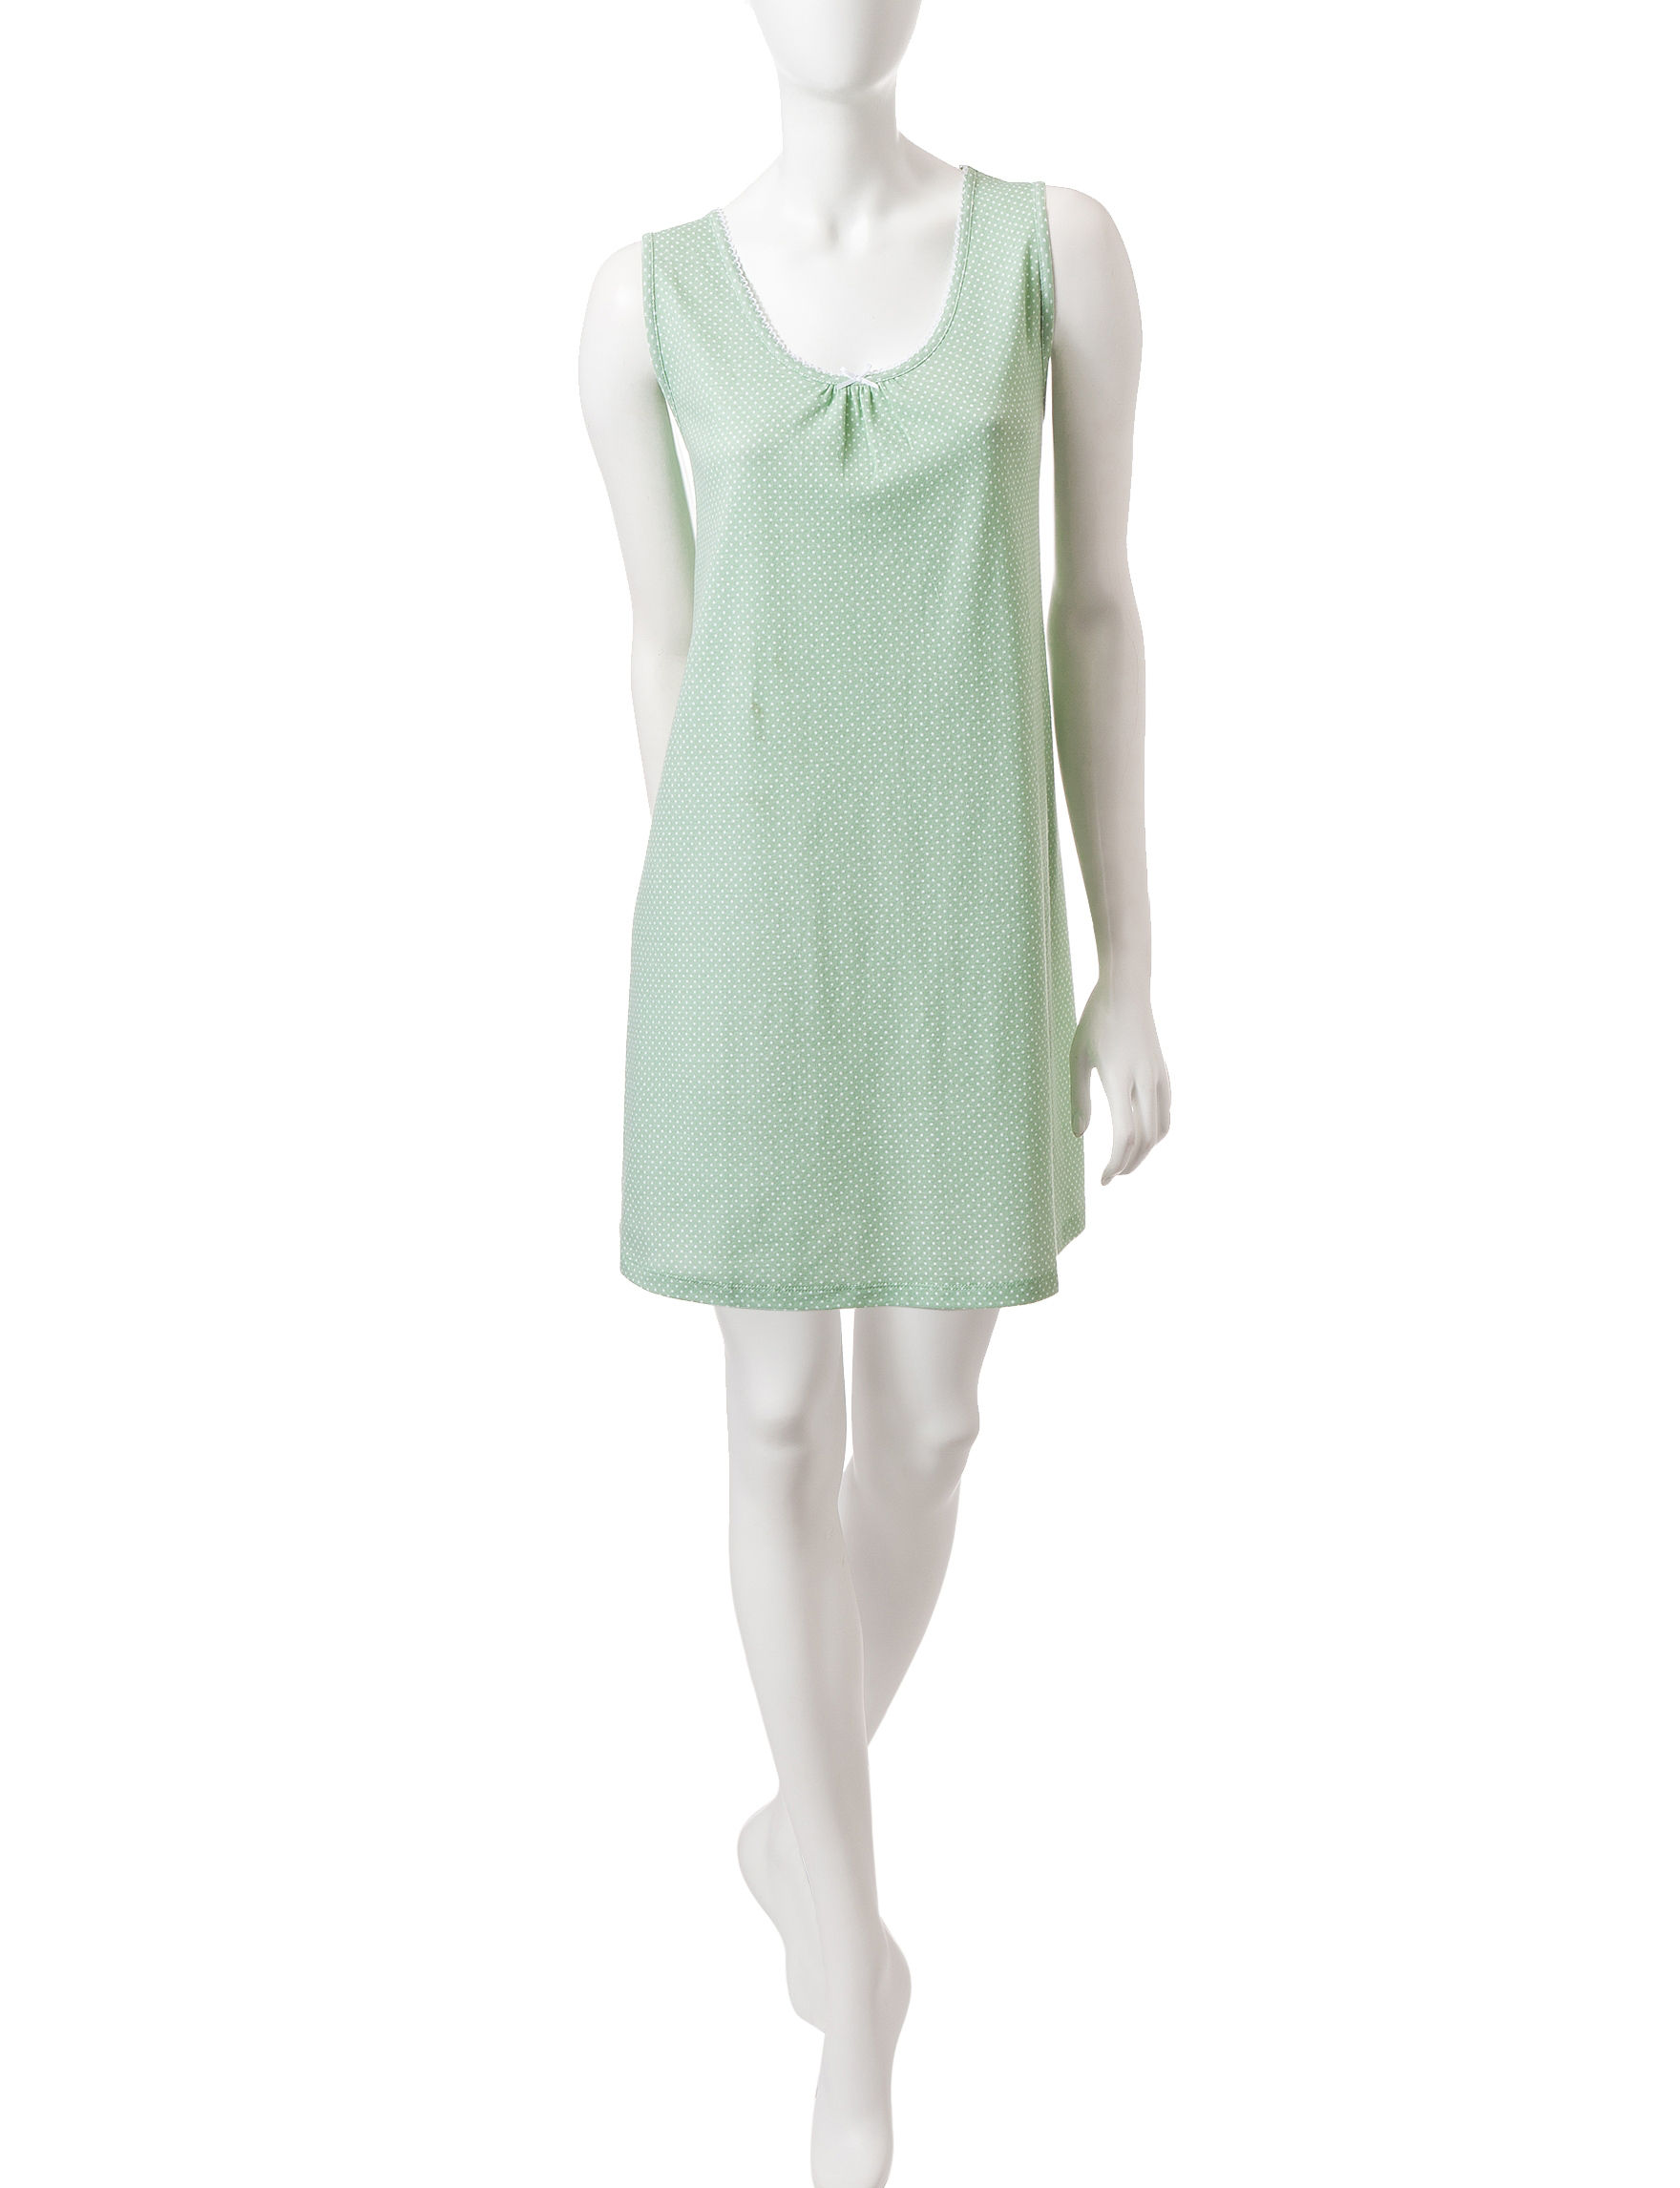 Karen Neuburger Green / White Nightgowns & Sleep Shirts